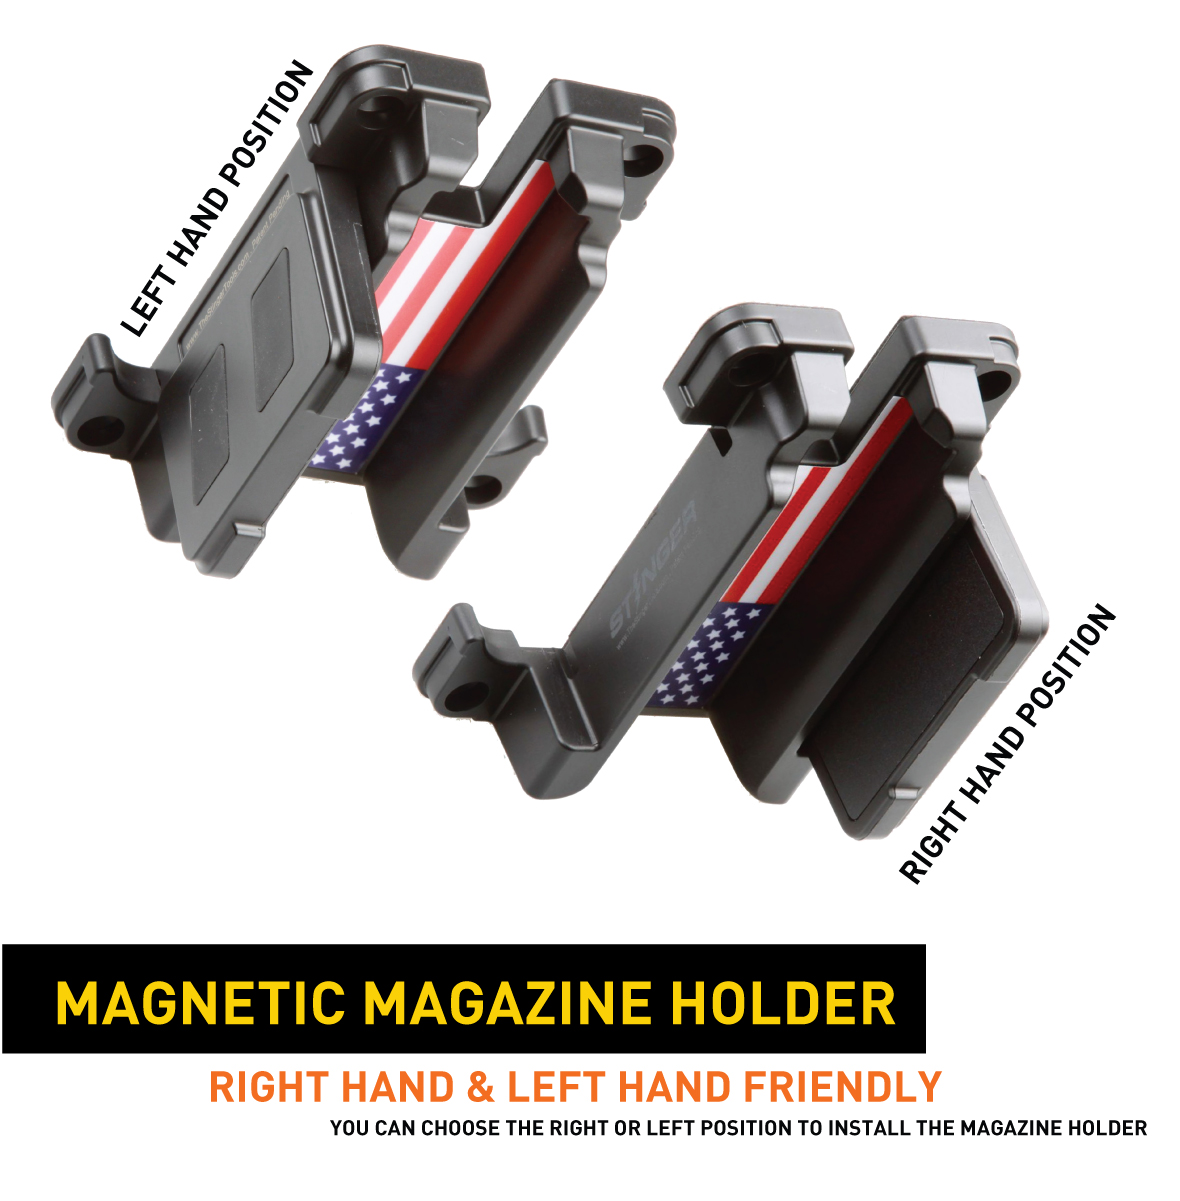 Stinger QUICK-LOAD Gun & Magazine Magnetic Holder Fits Most Semi-Auto Pistols for Left Hand and Right Hand